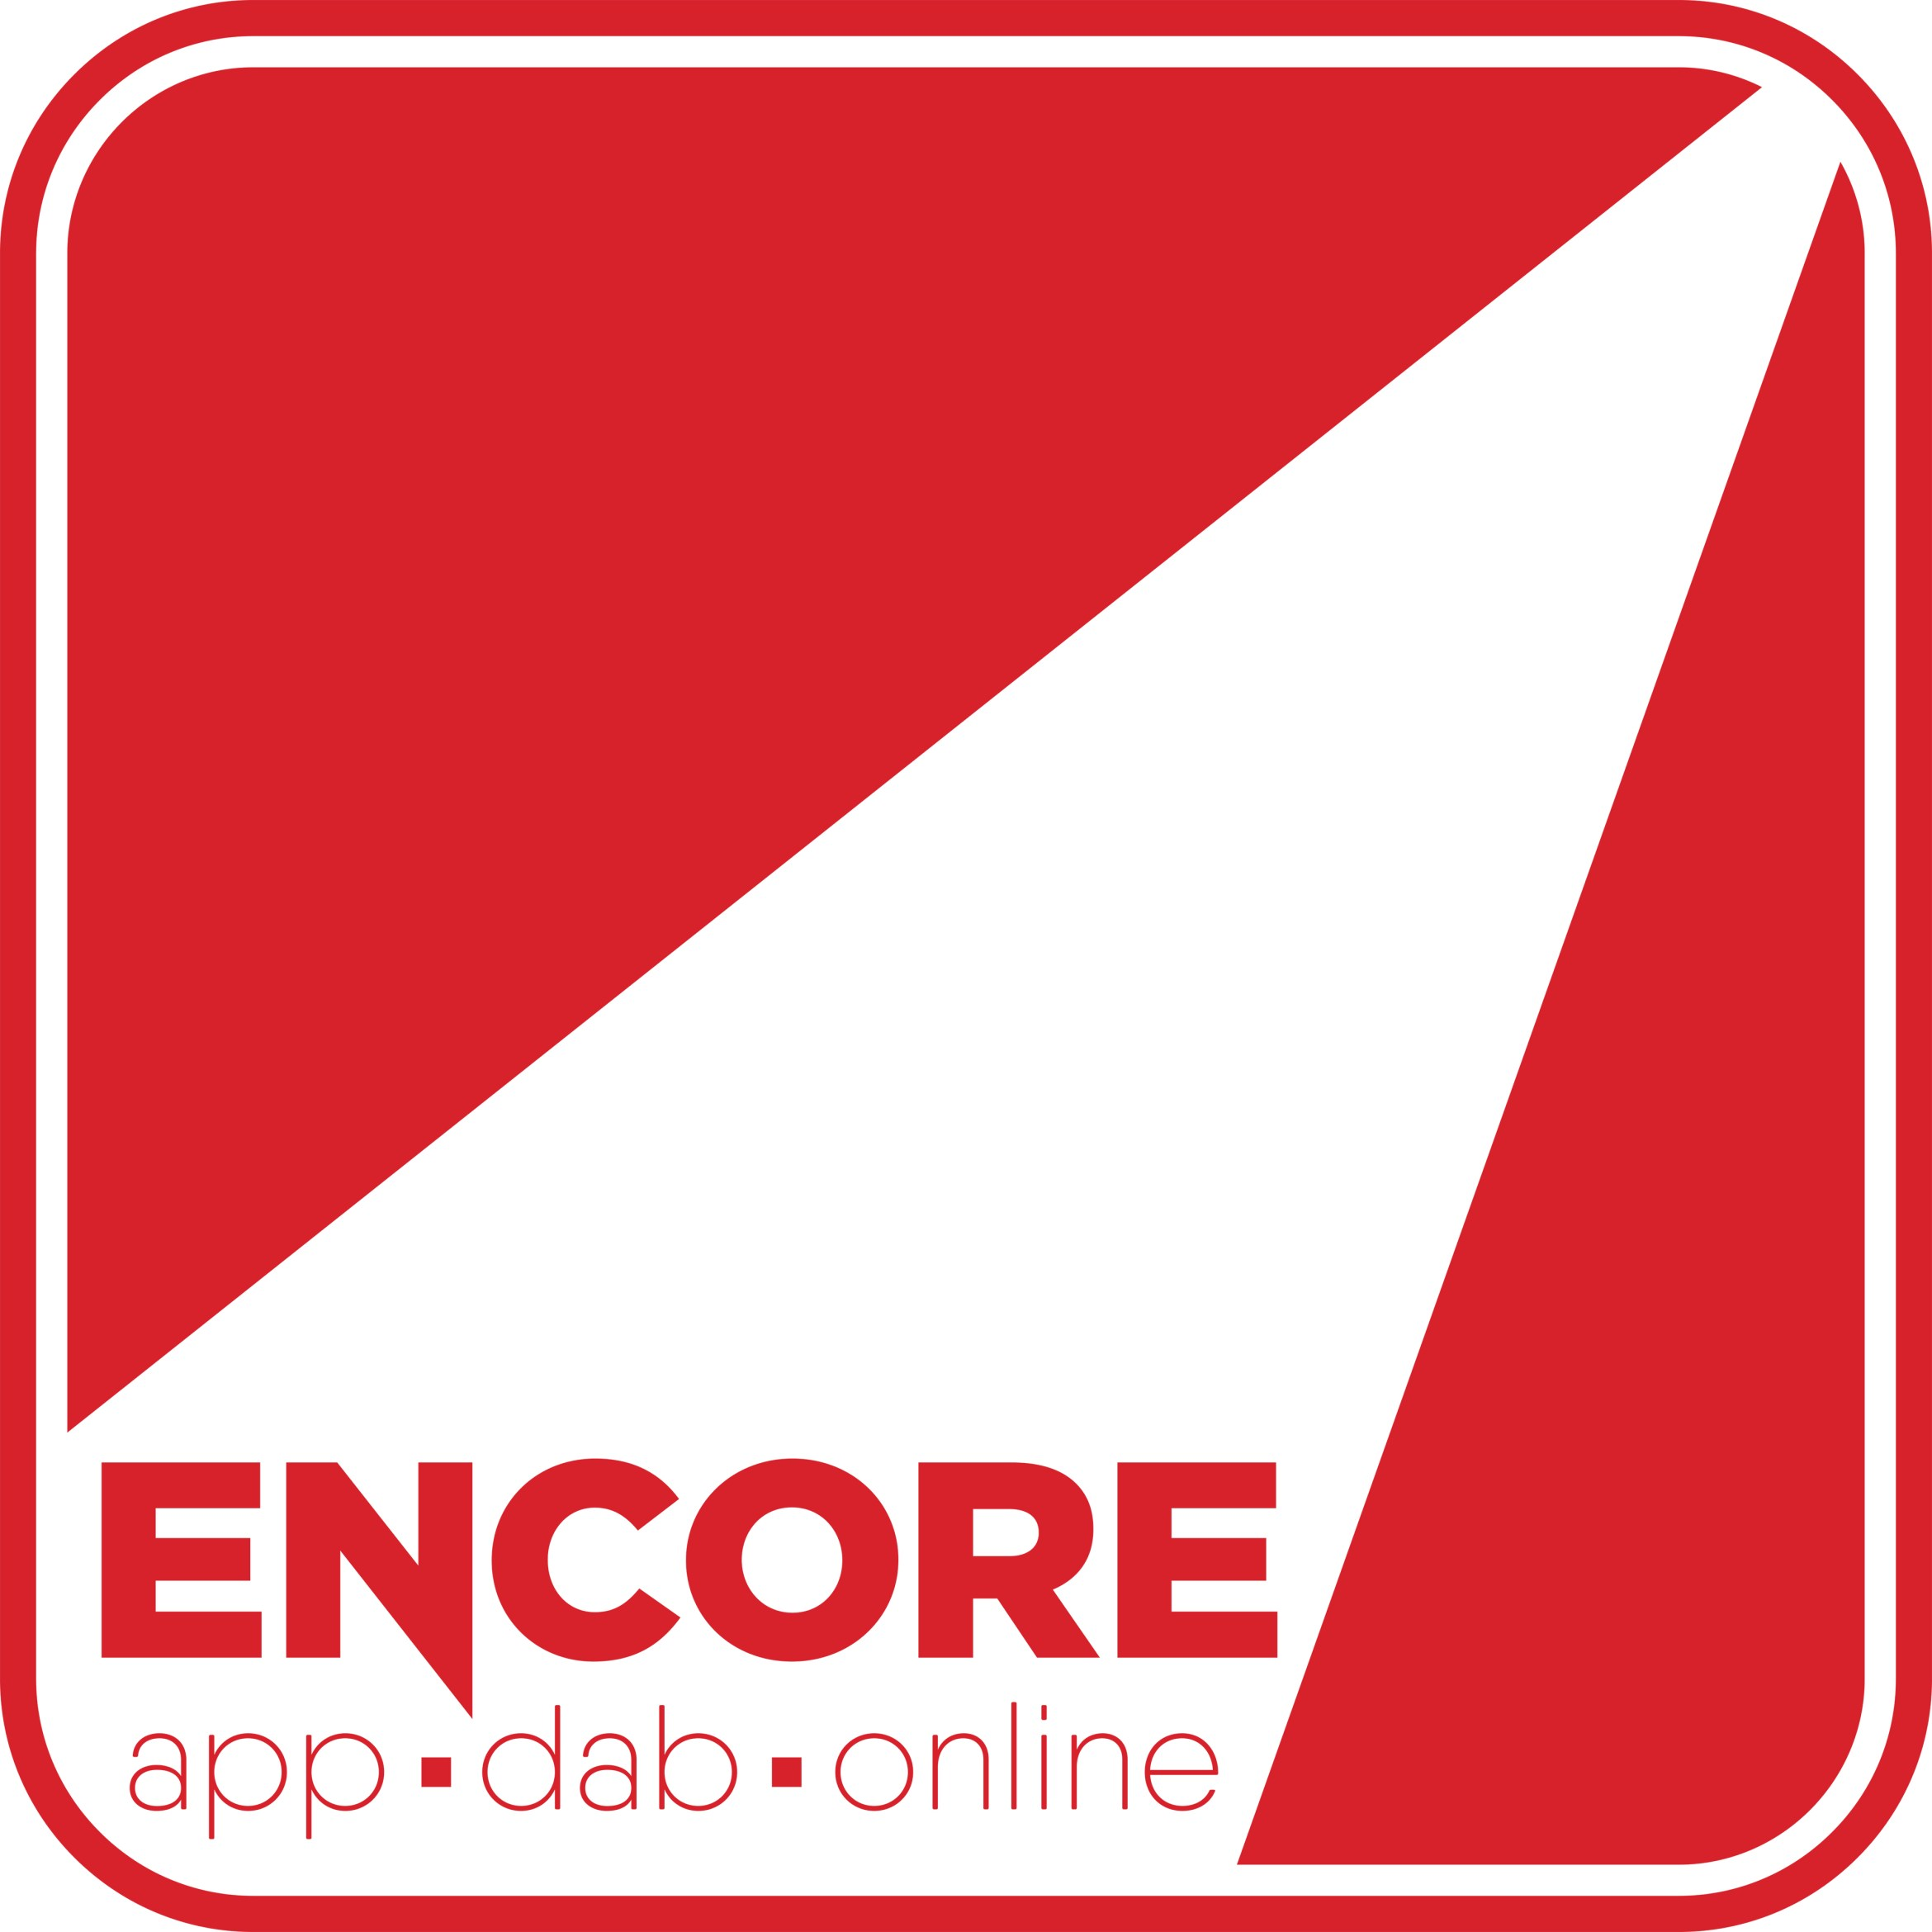 ENCORE_logo_2016-REVISED.jpg